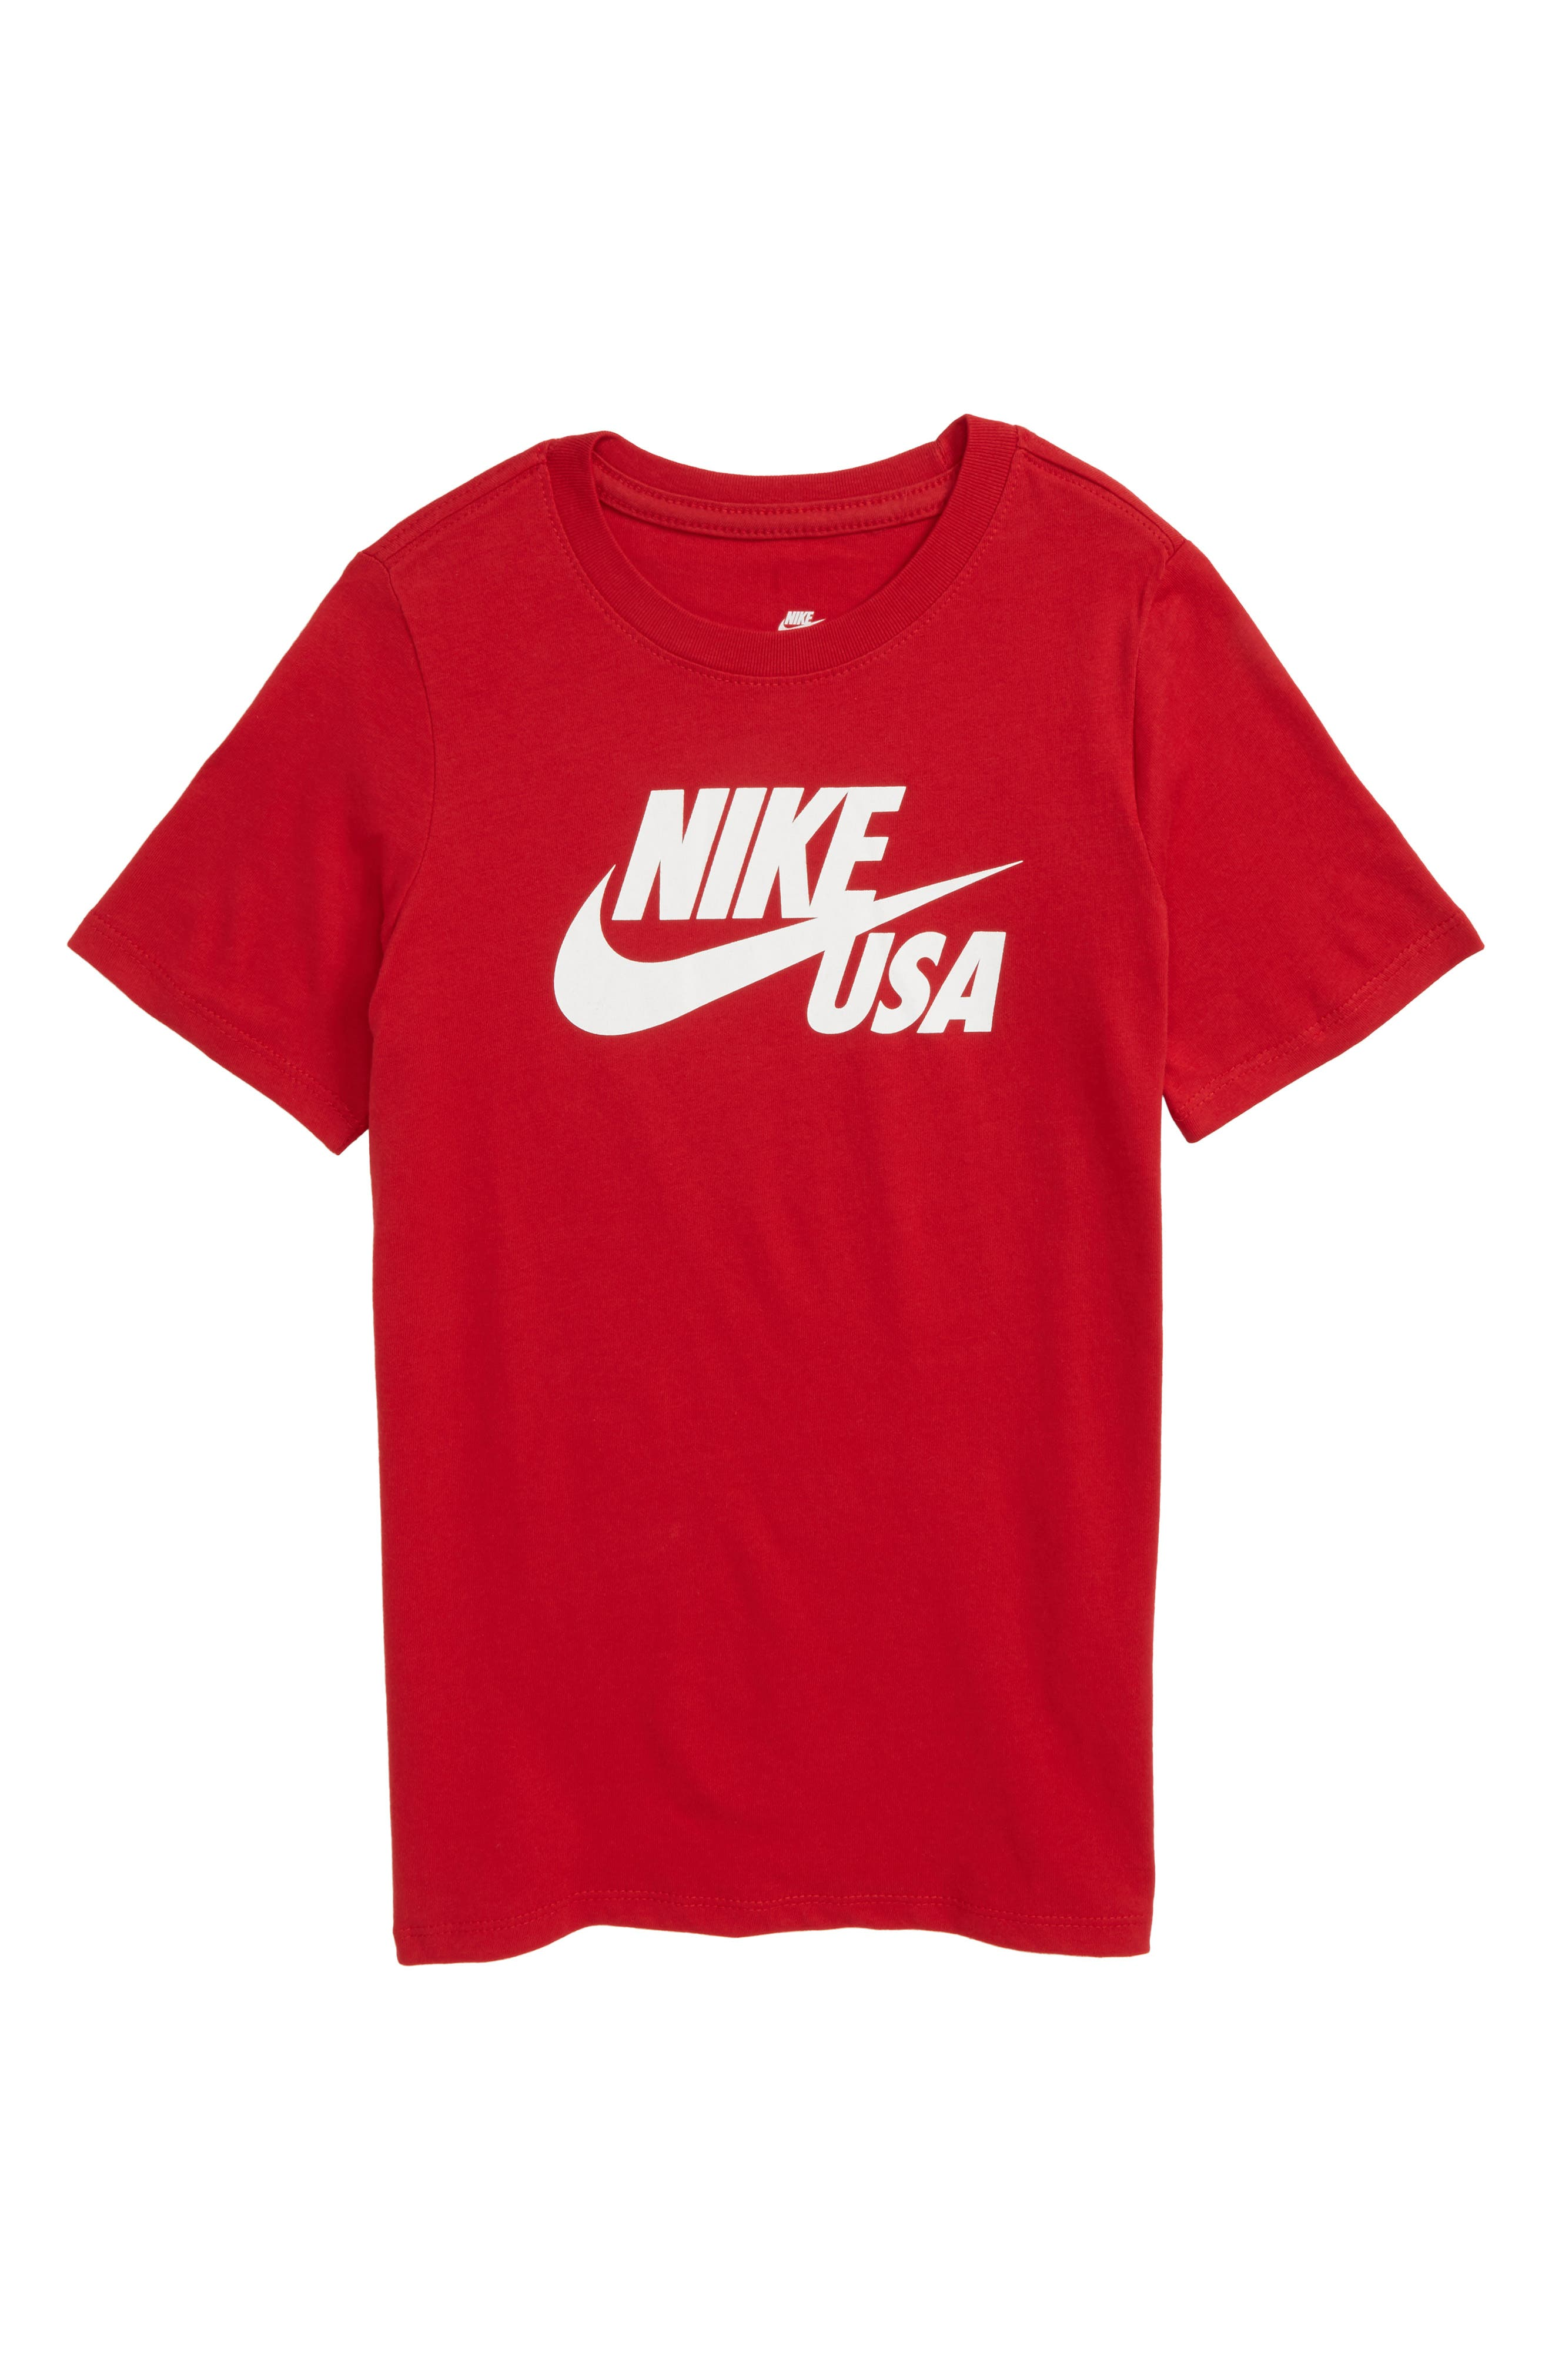 Sportswear USA Country Graphic T-Shirt,                             Main thumbnail 3, color,